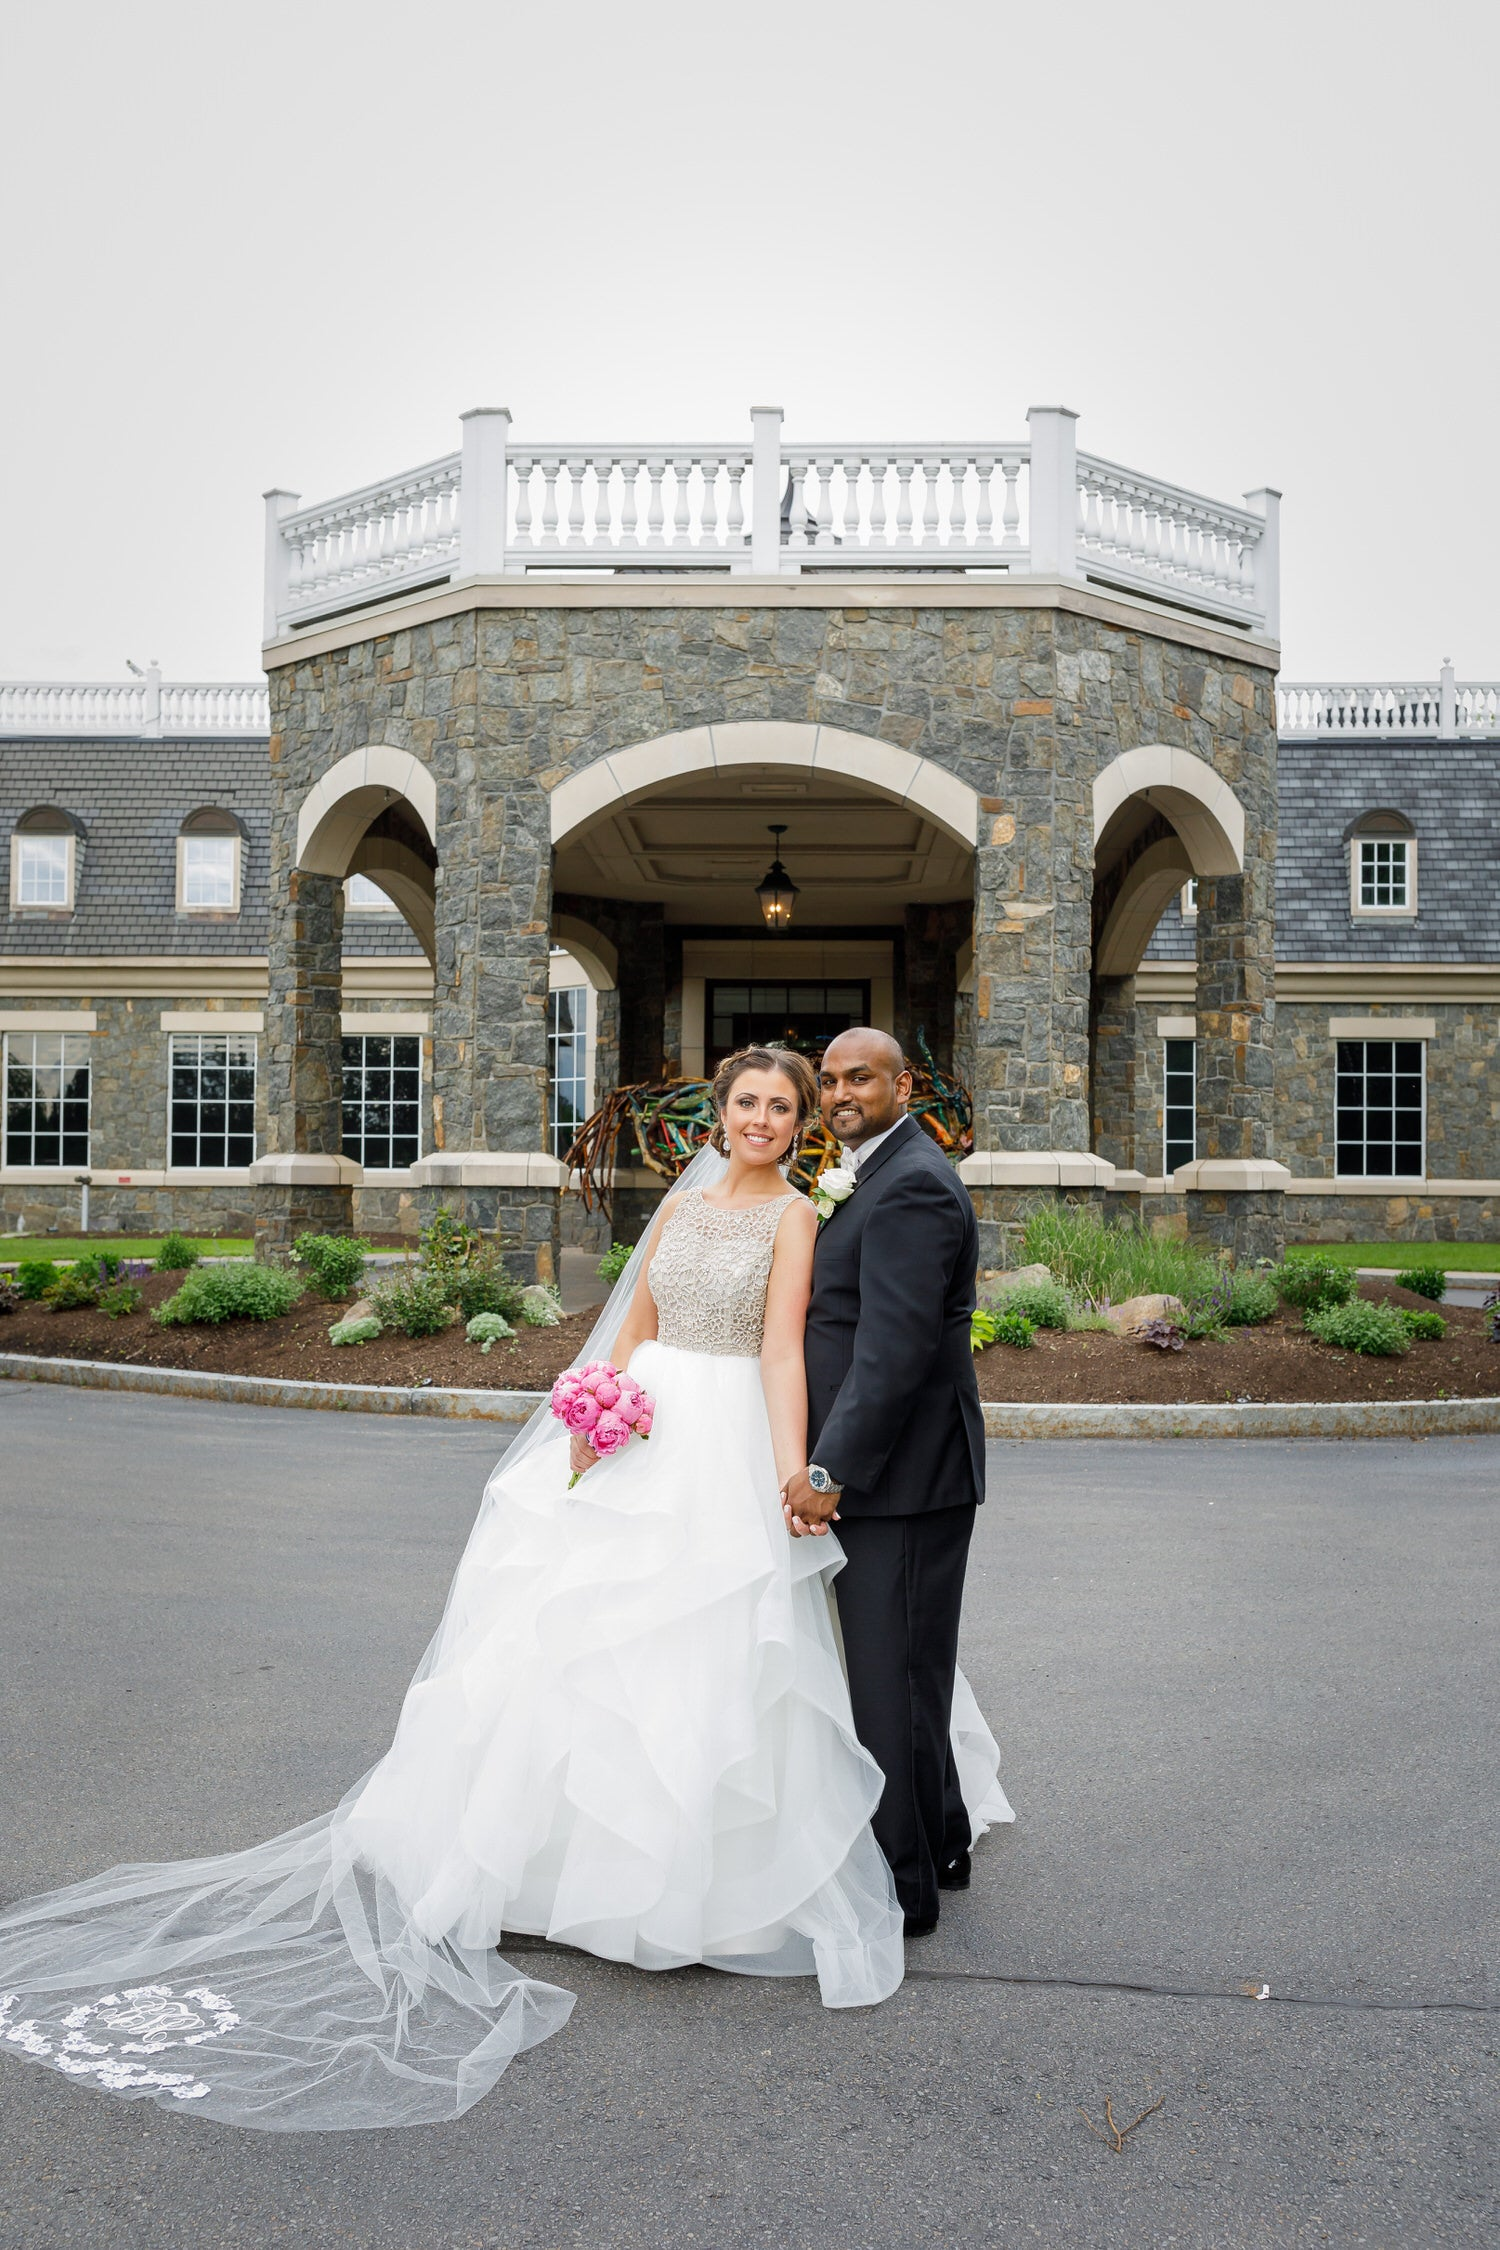 formal castle wedding with bride in ballgown and long monogrammed veil